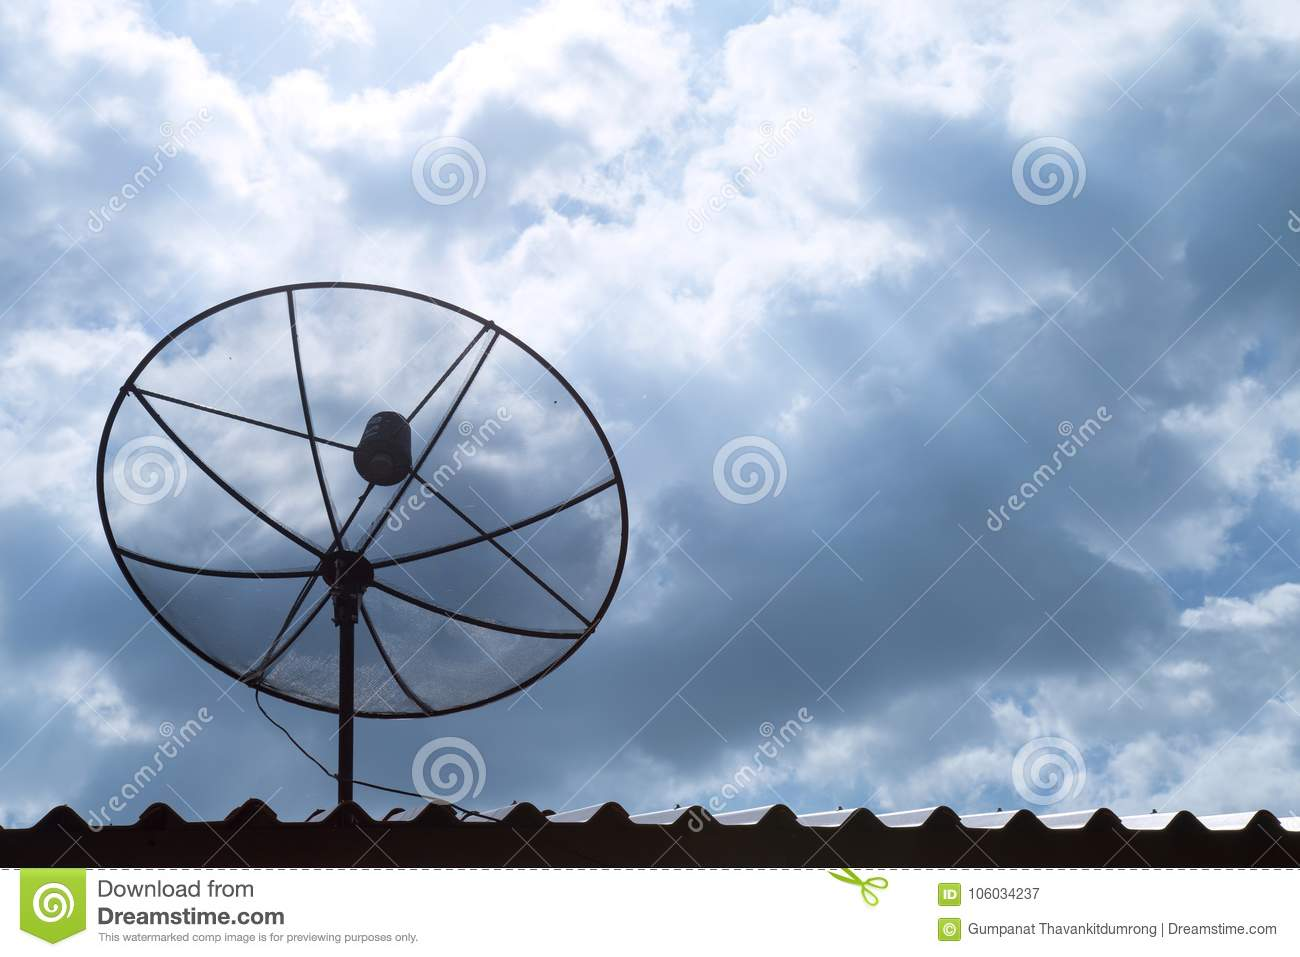 Technologies used for the satellite communication